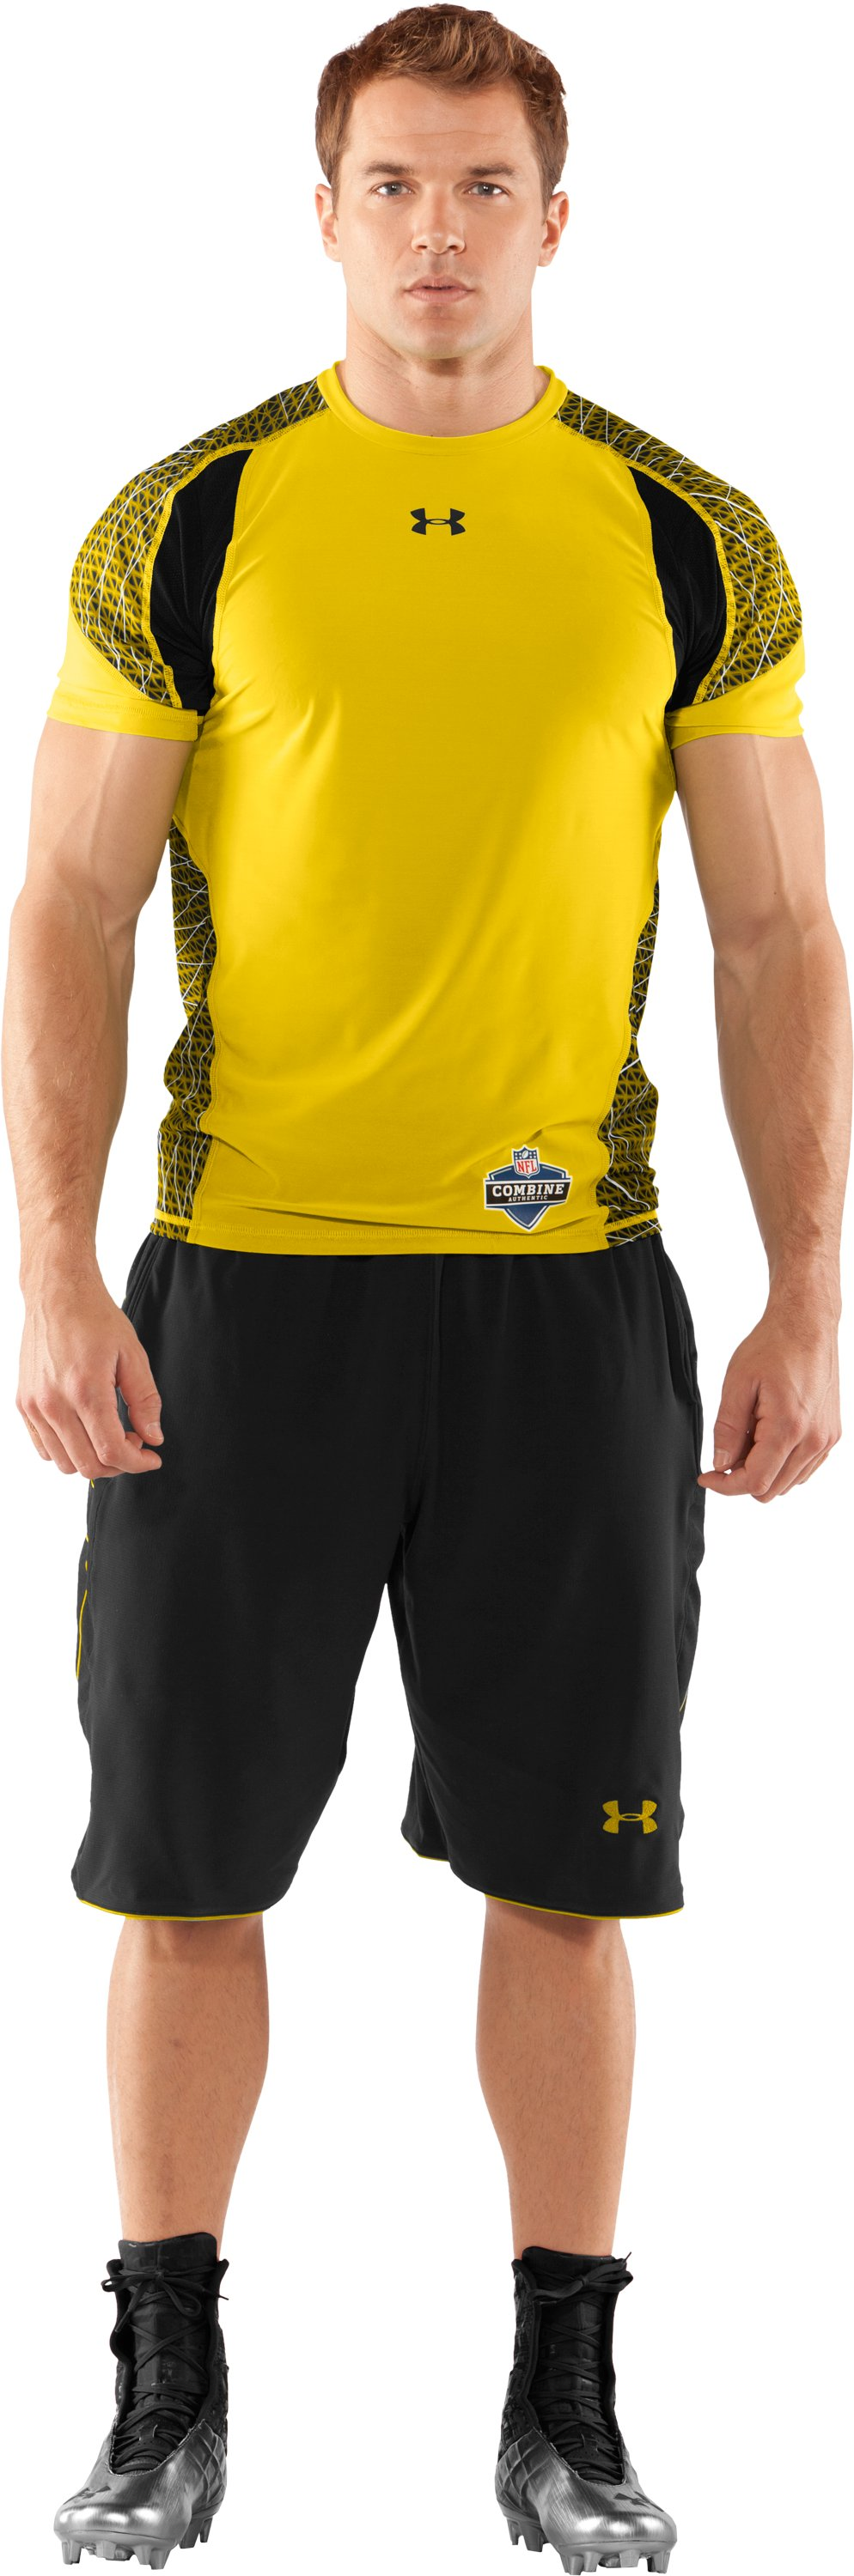 Men's NFL Combine Authentic Warp Speed Fitted Short Sleeve, Taxi